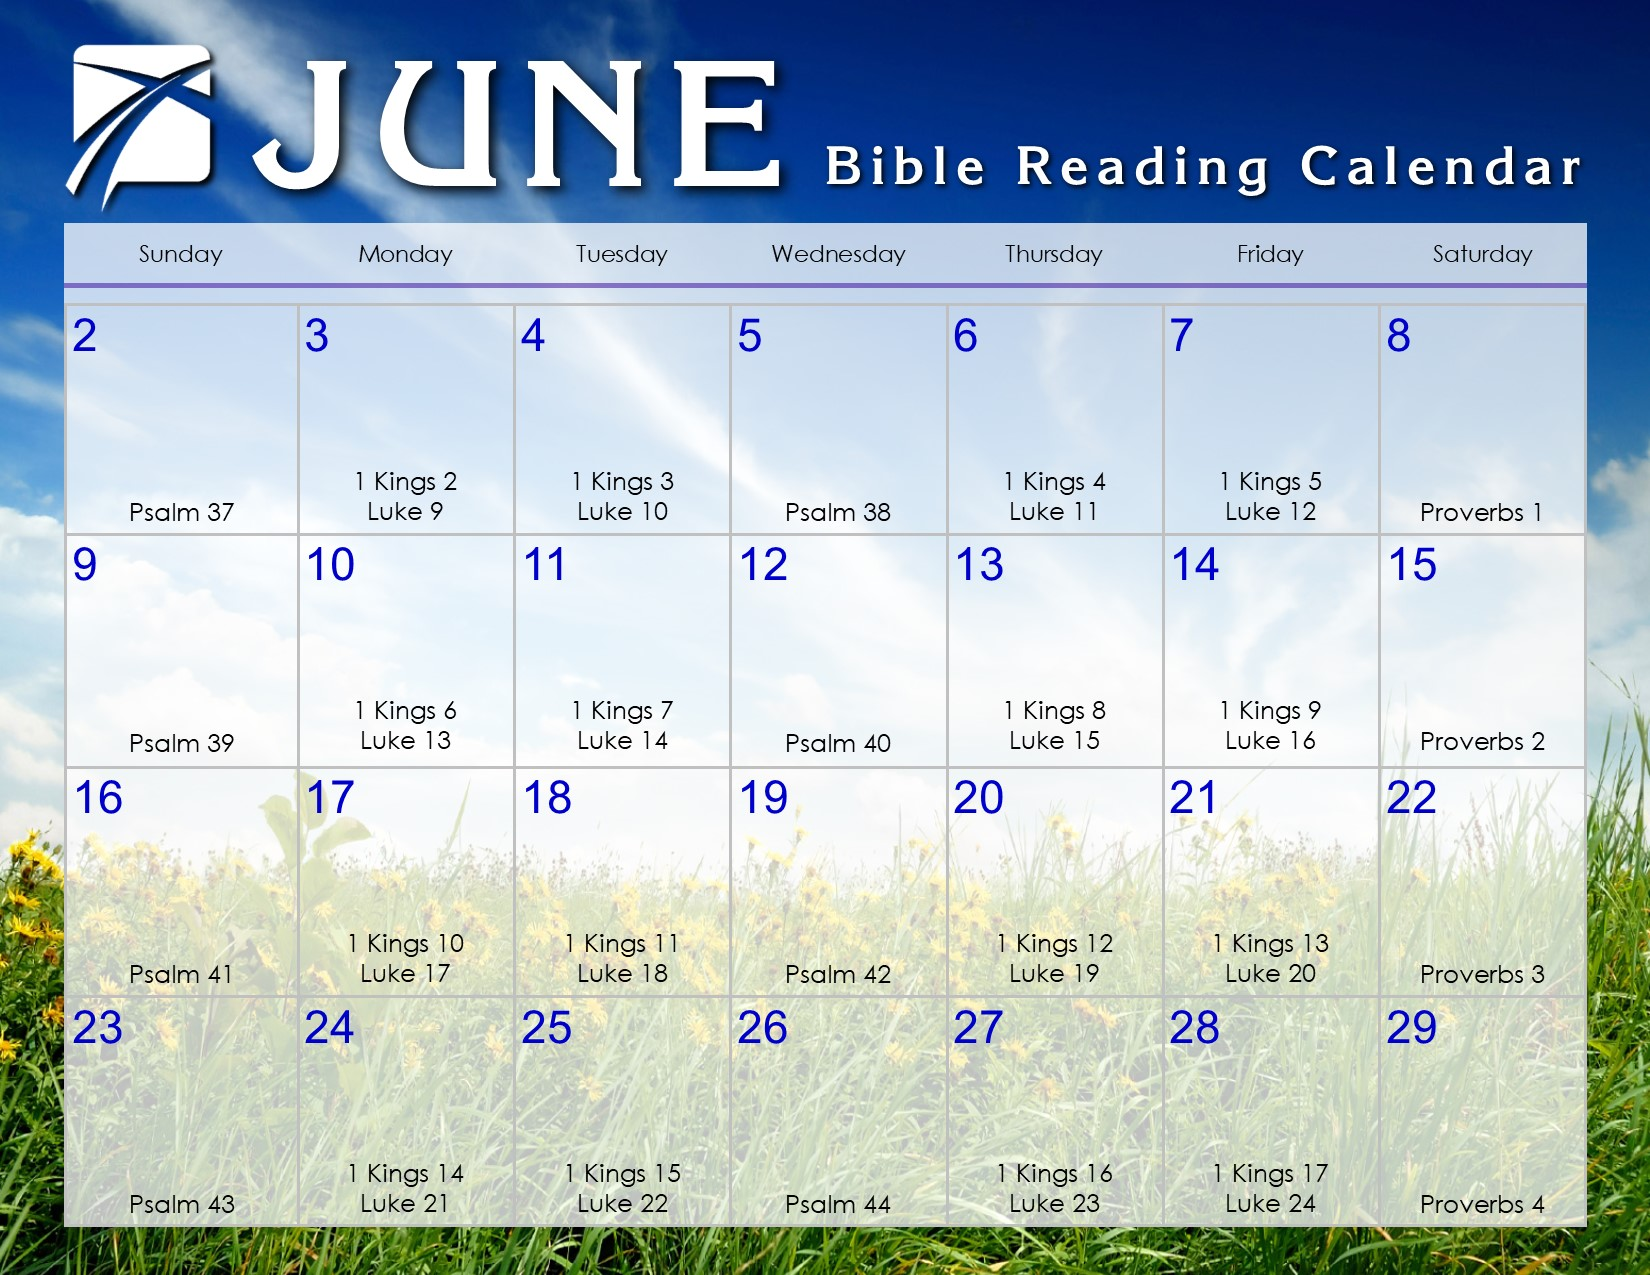 Calendar Of June.June 2019 Daily Bible Reading Calendar In God S Image